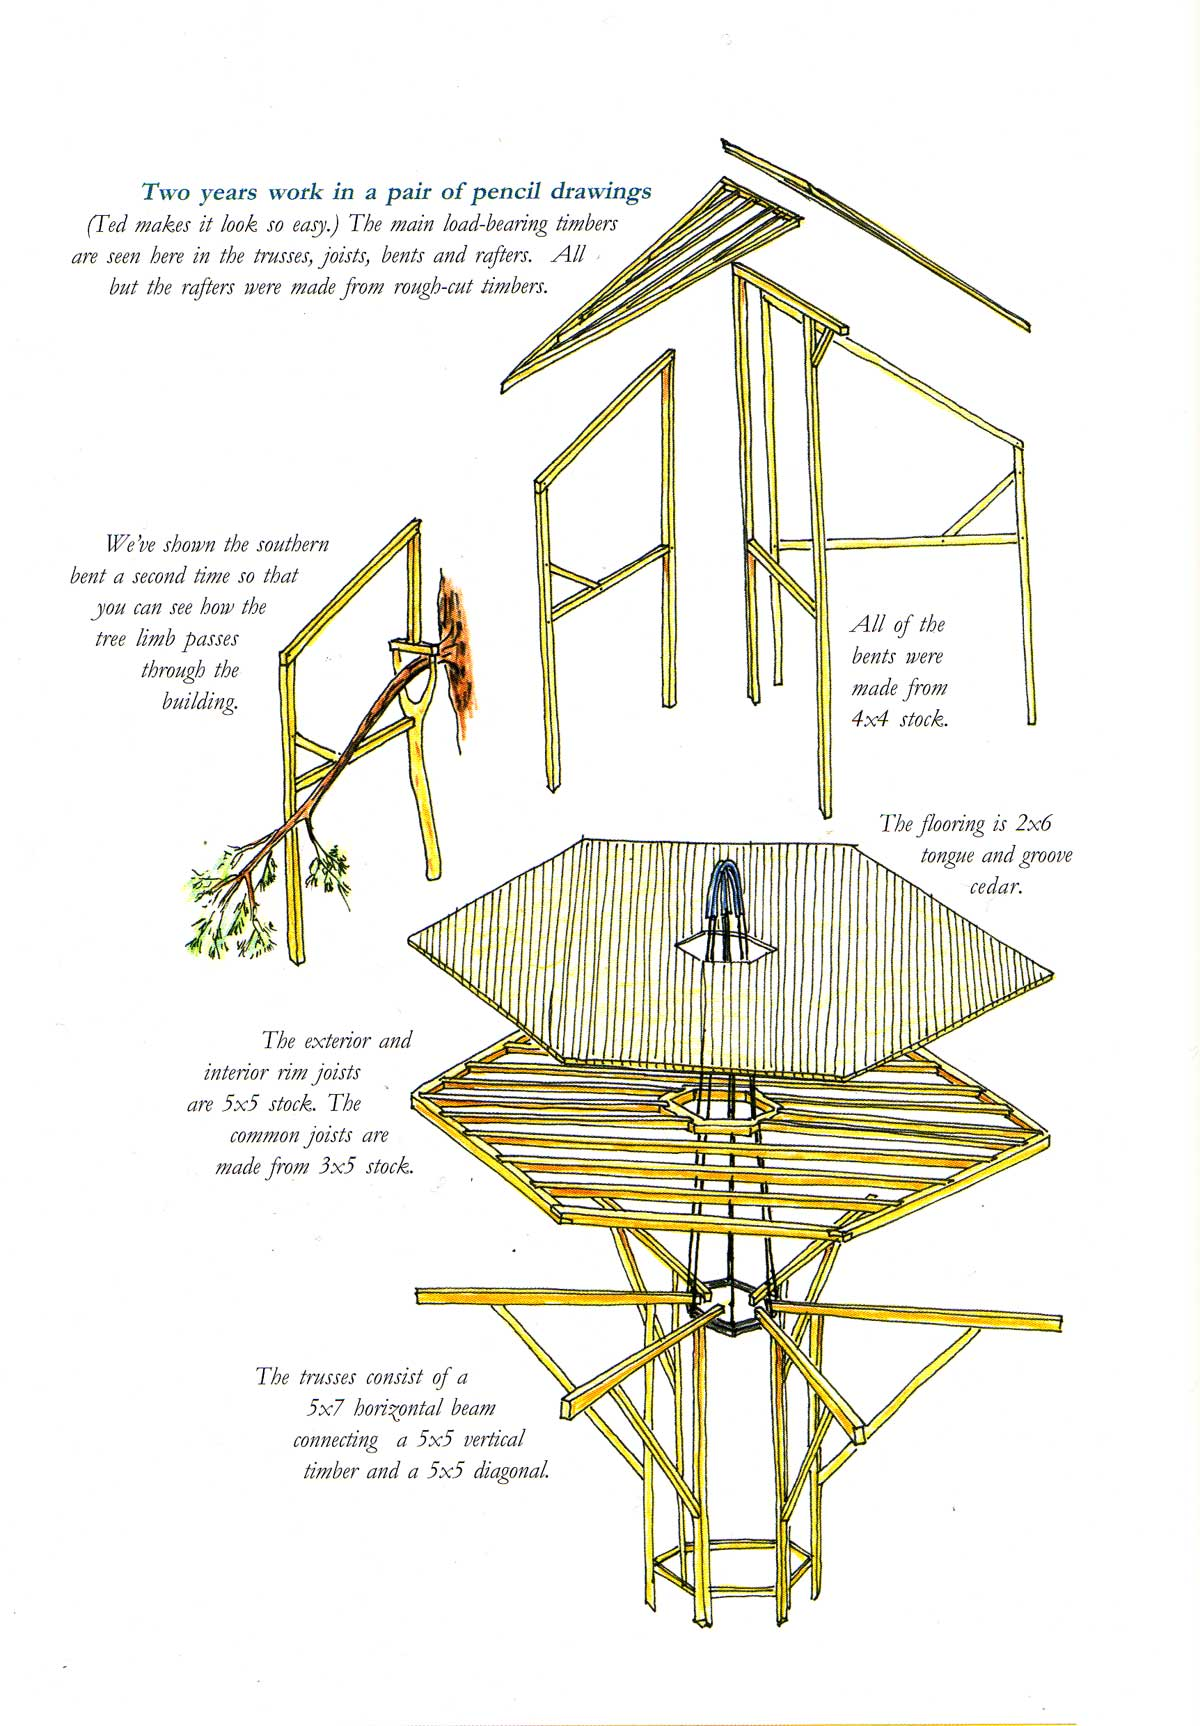 how the tree house is suspended